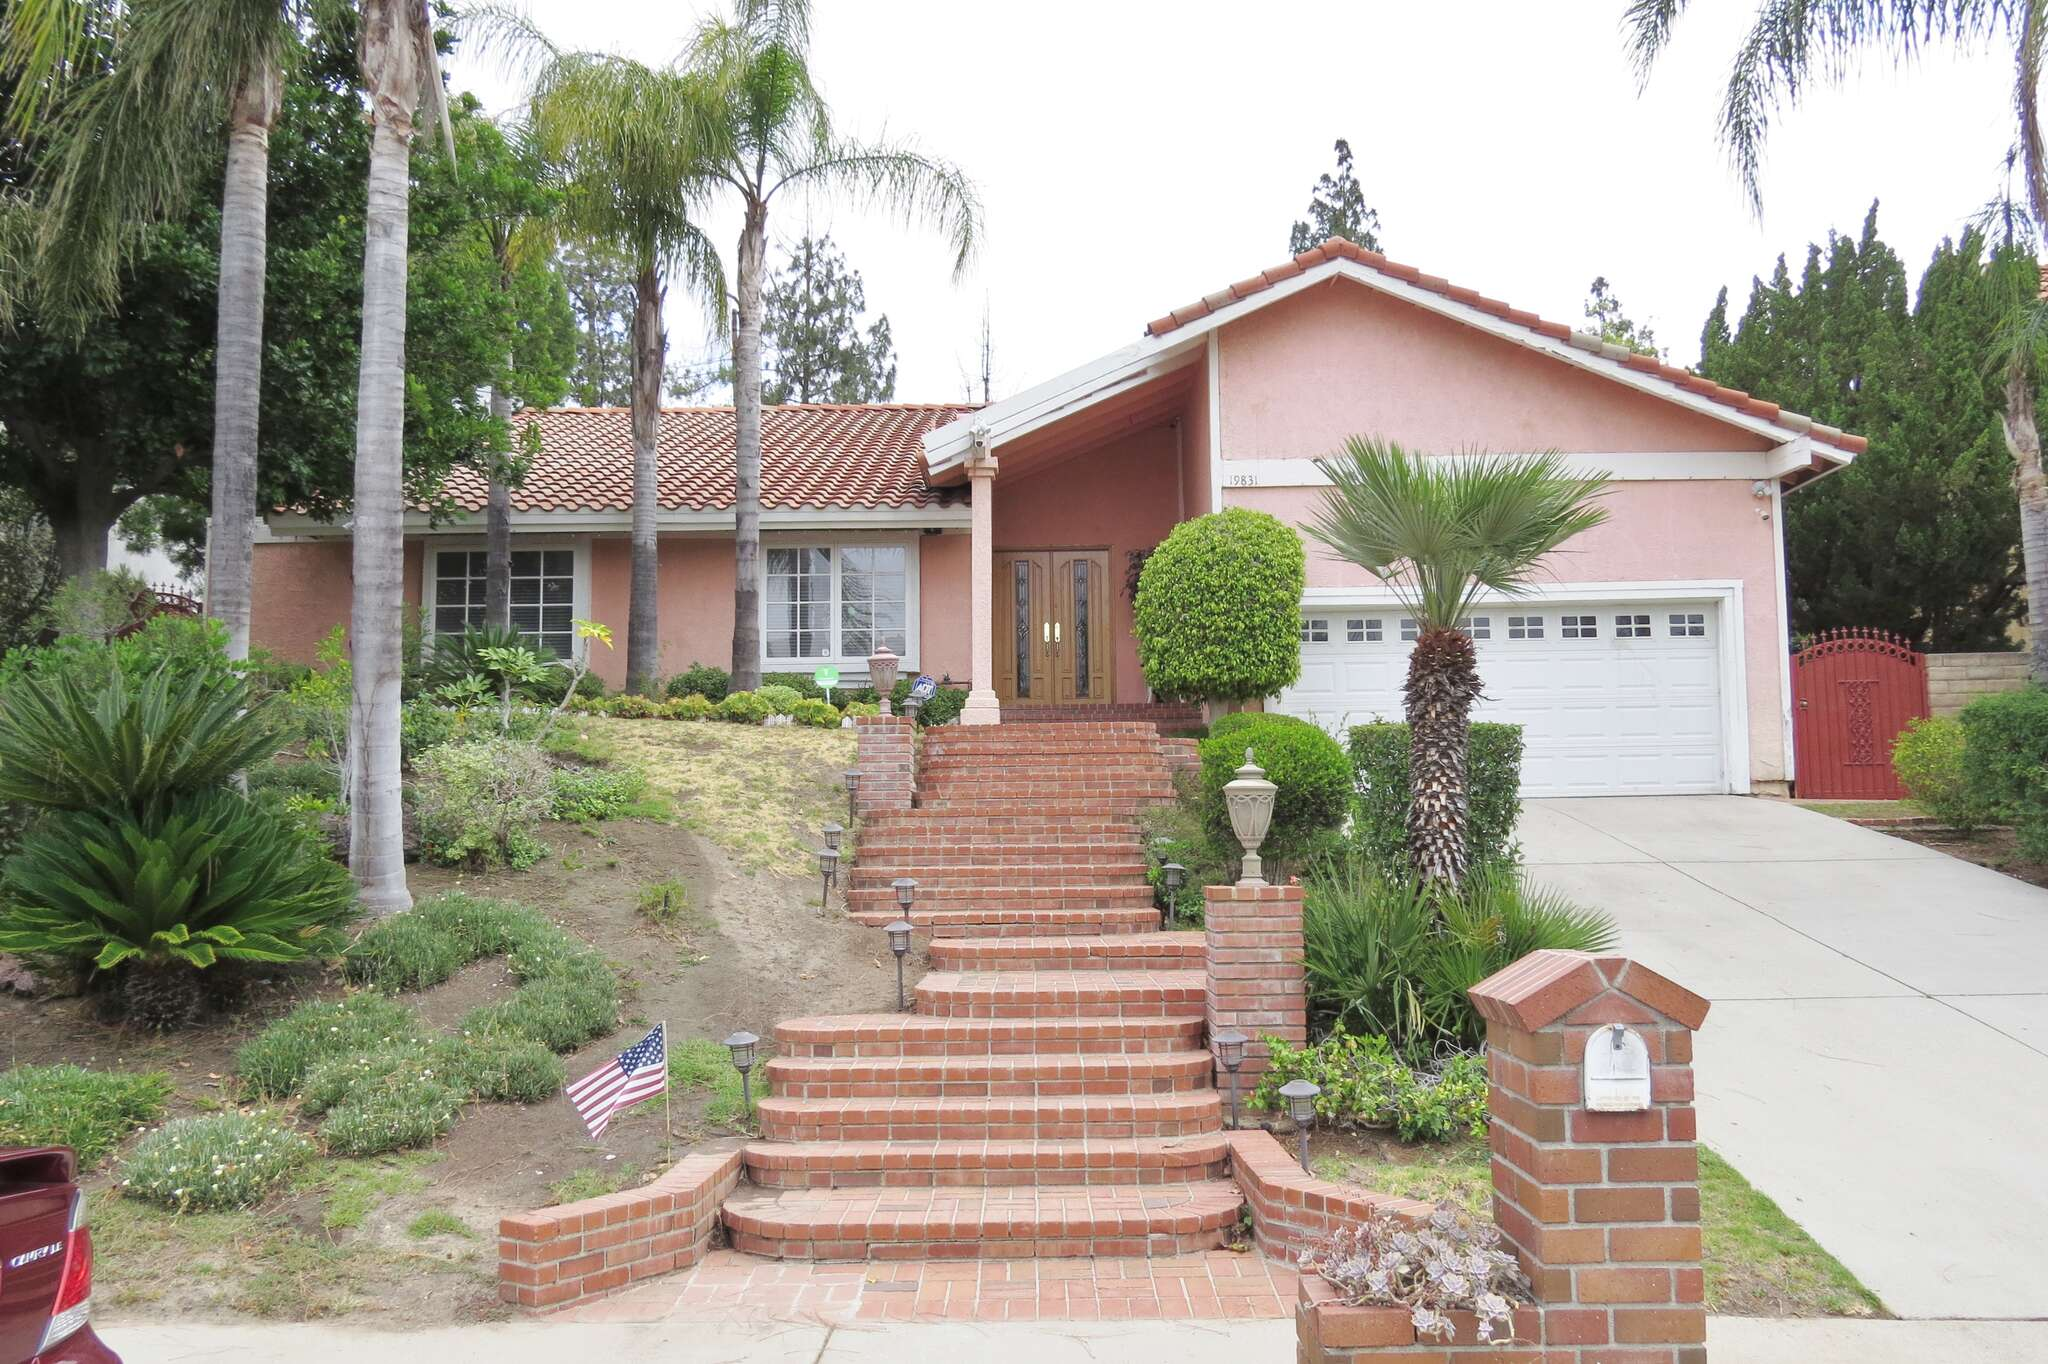 Single Family for Sale at 19831 Hiawatha St Chatsworth, California 91311 United States